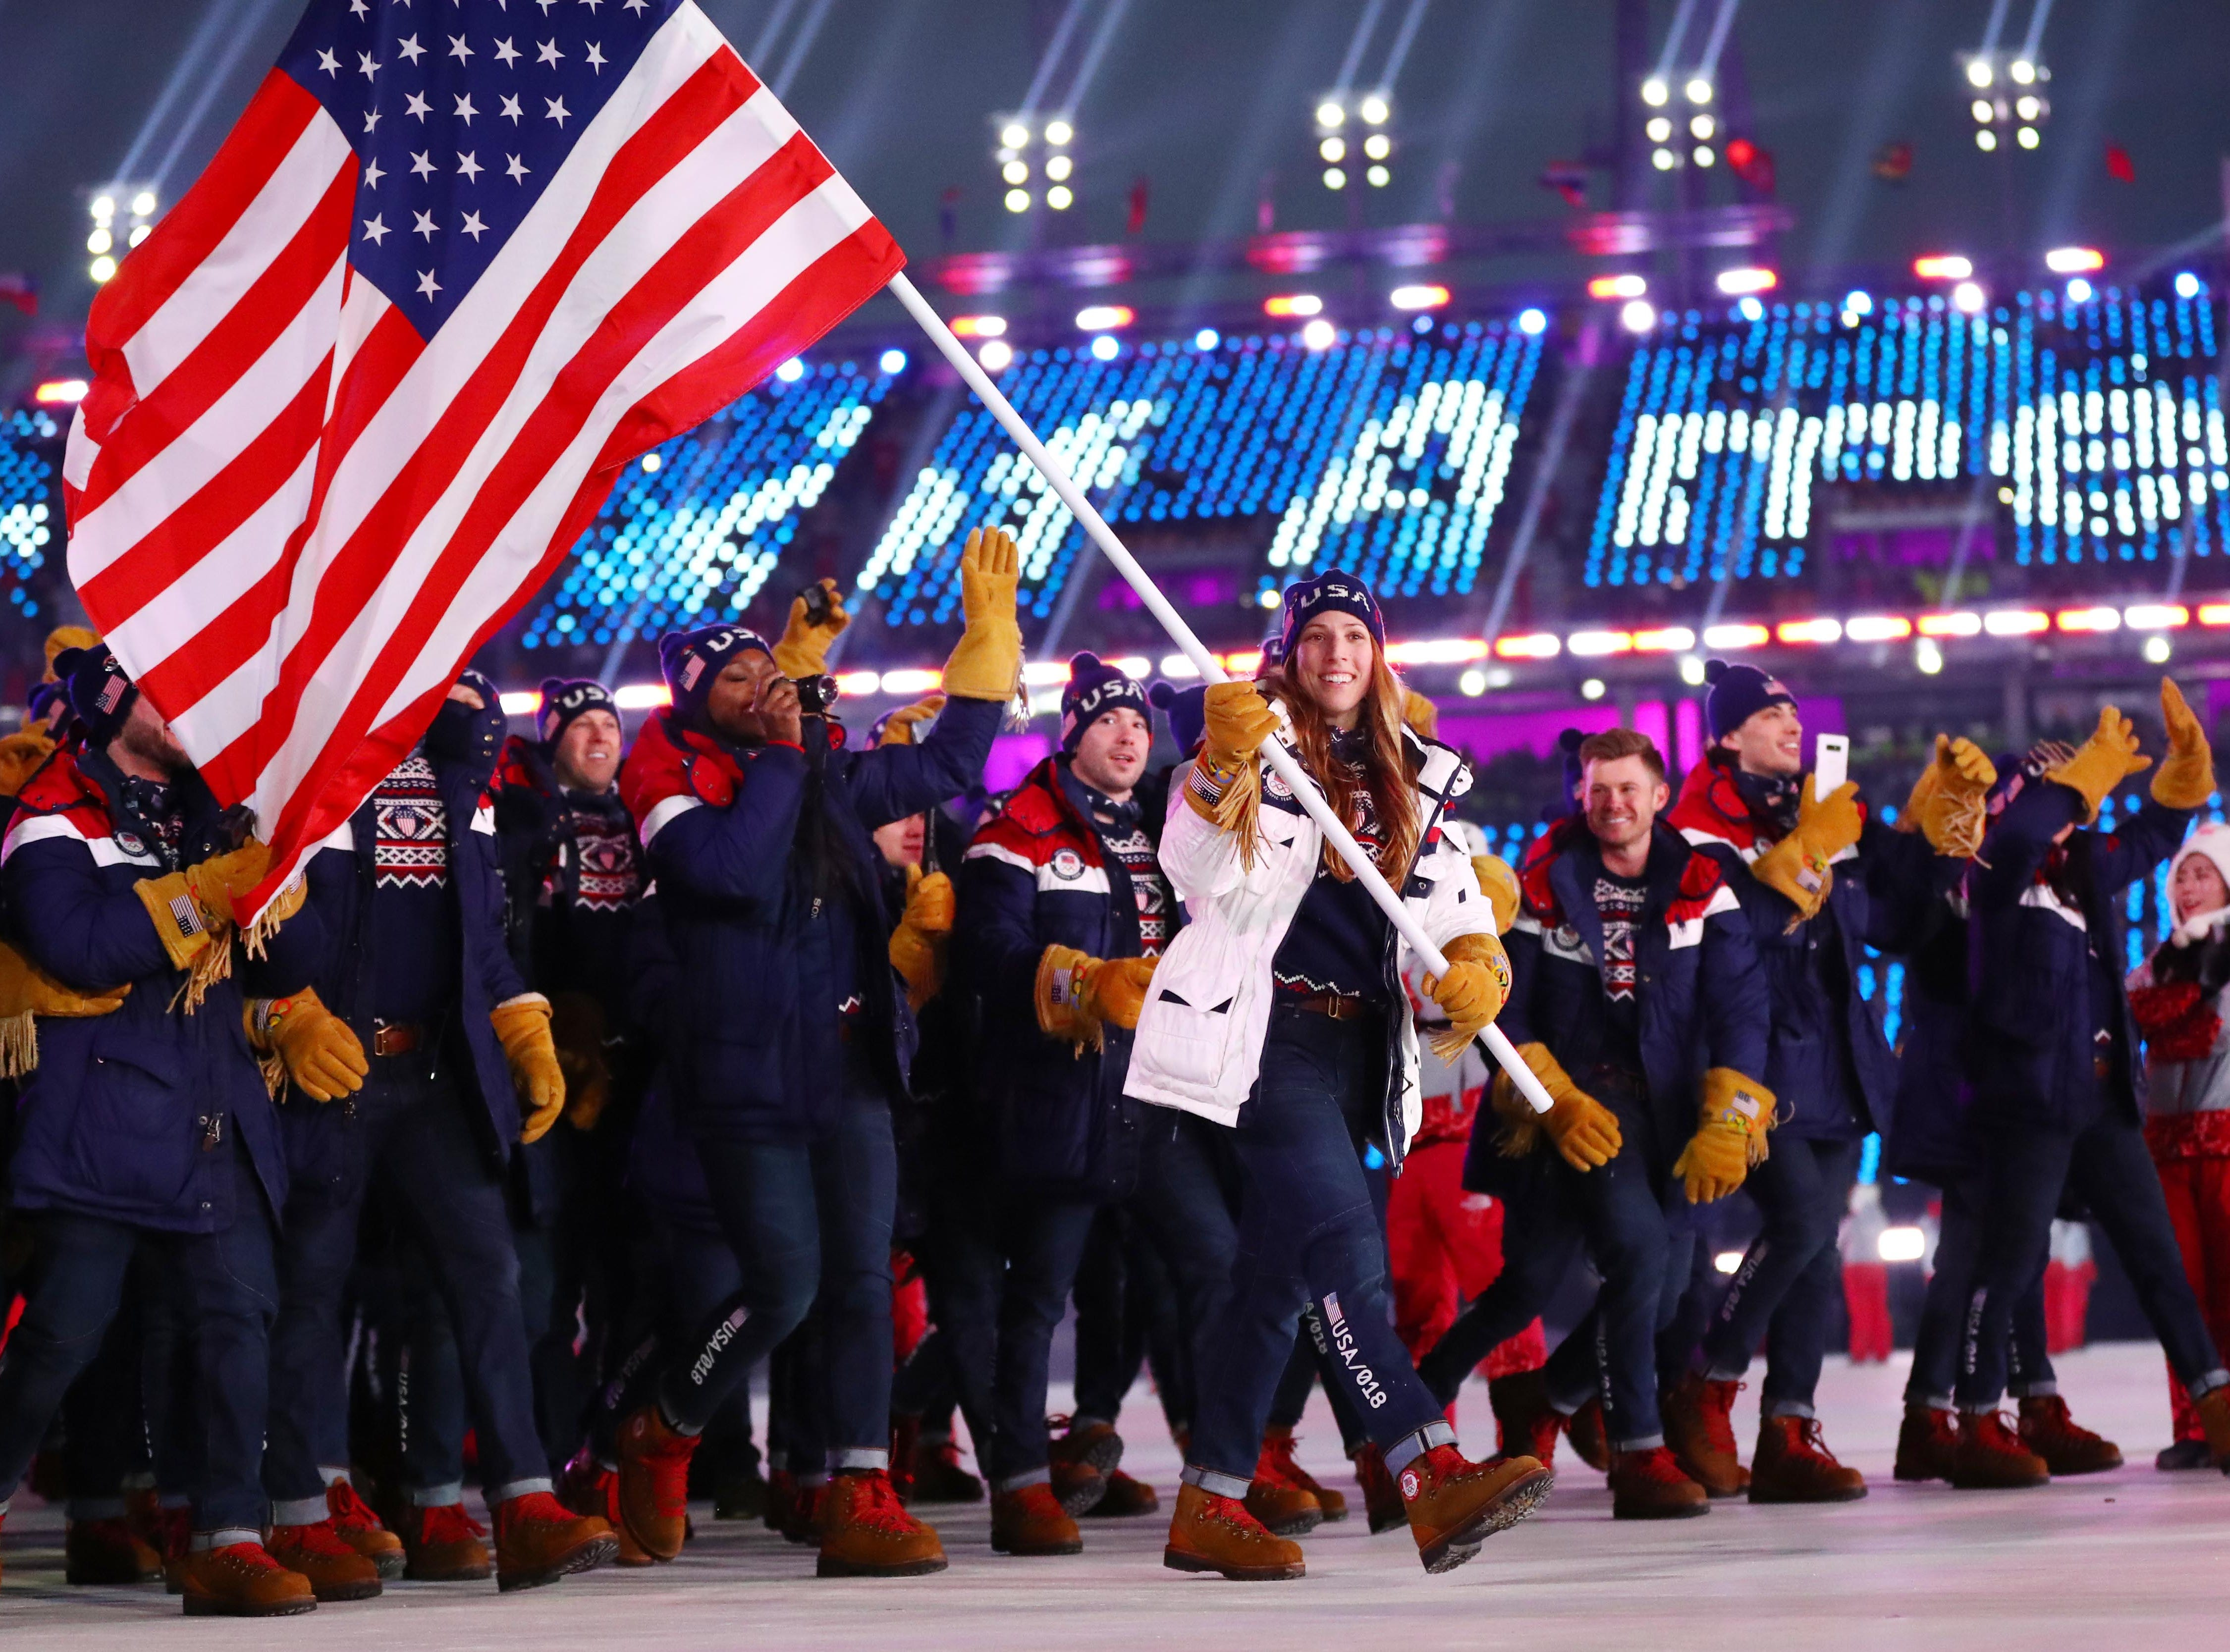 Feb. 9, 2018: Erin Hamlin leads the delegation from the United States during the opening ceremony for the Pyeongchang 2018 Olympic Winter Games at Pyeongchang Olympic Stadium.